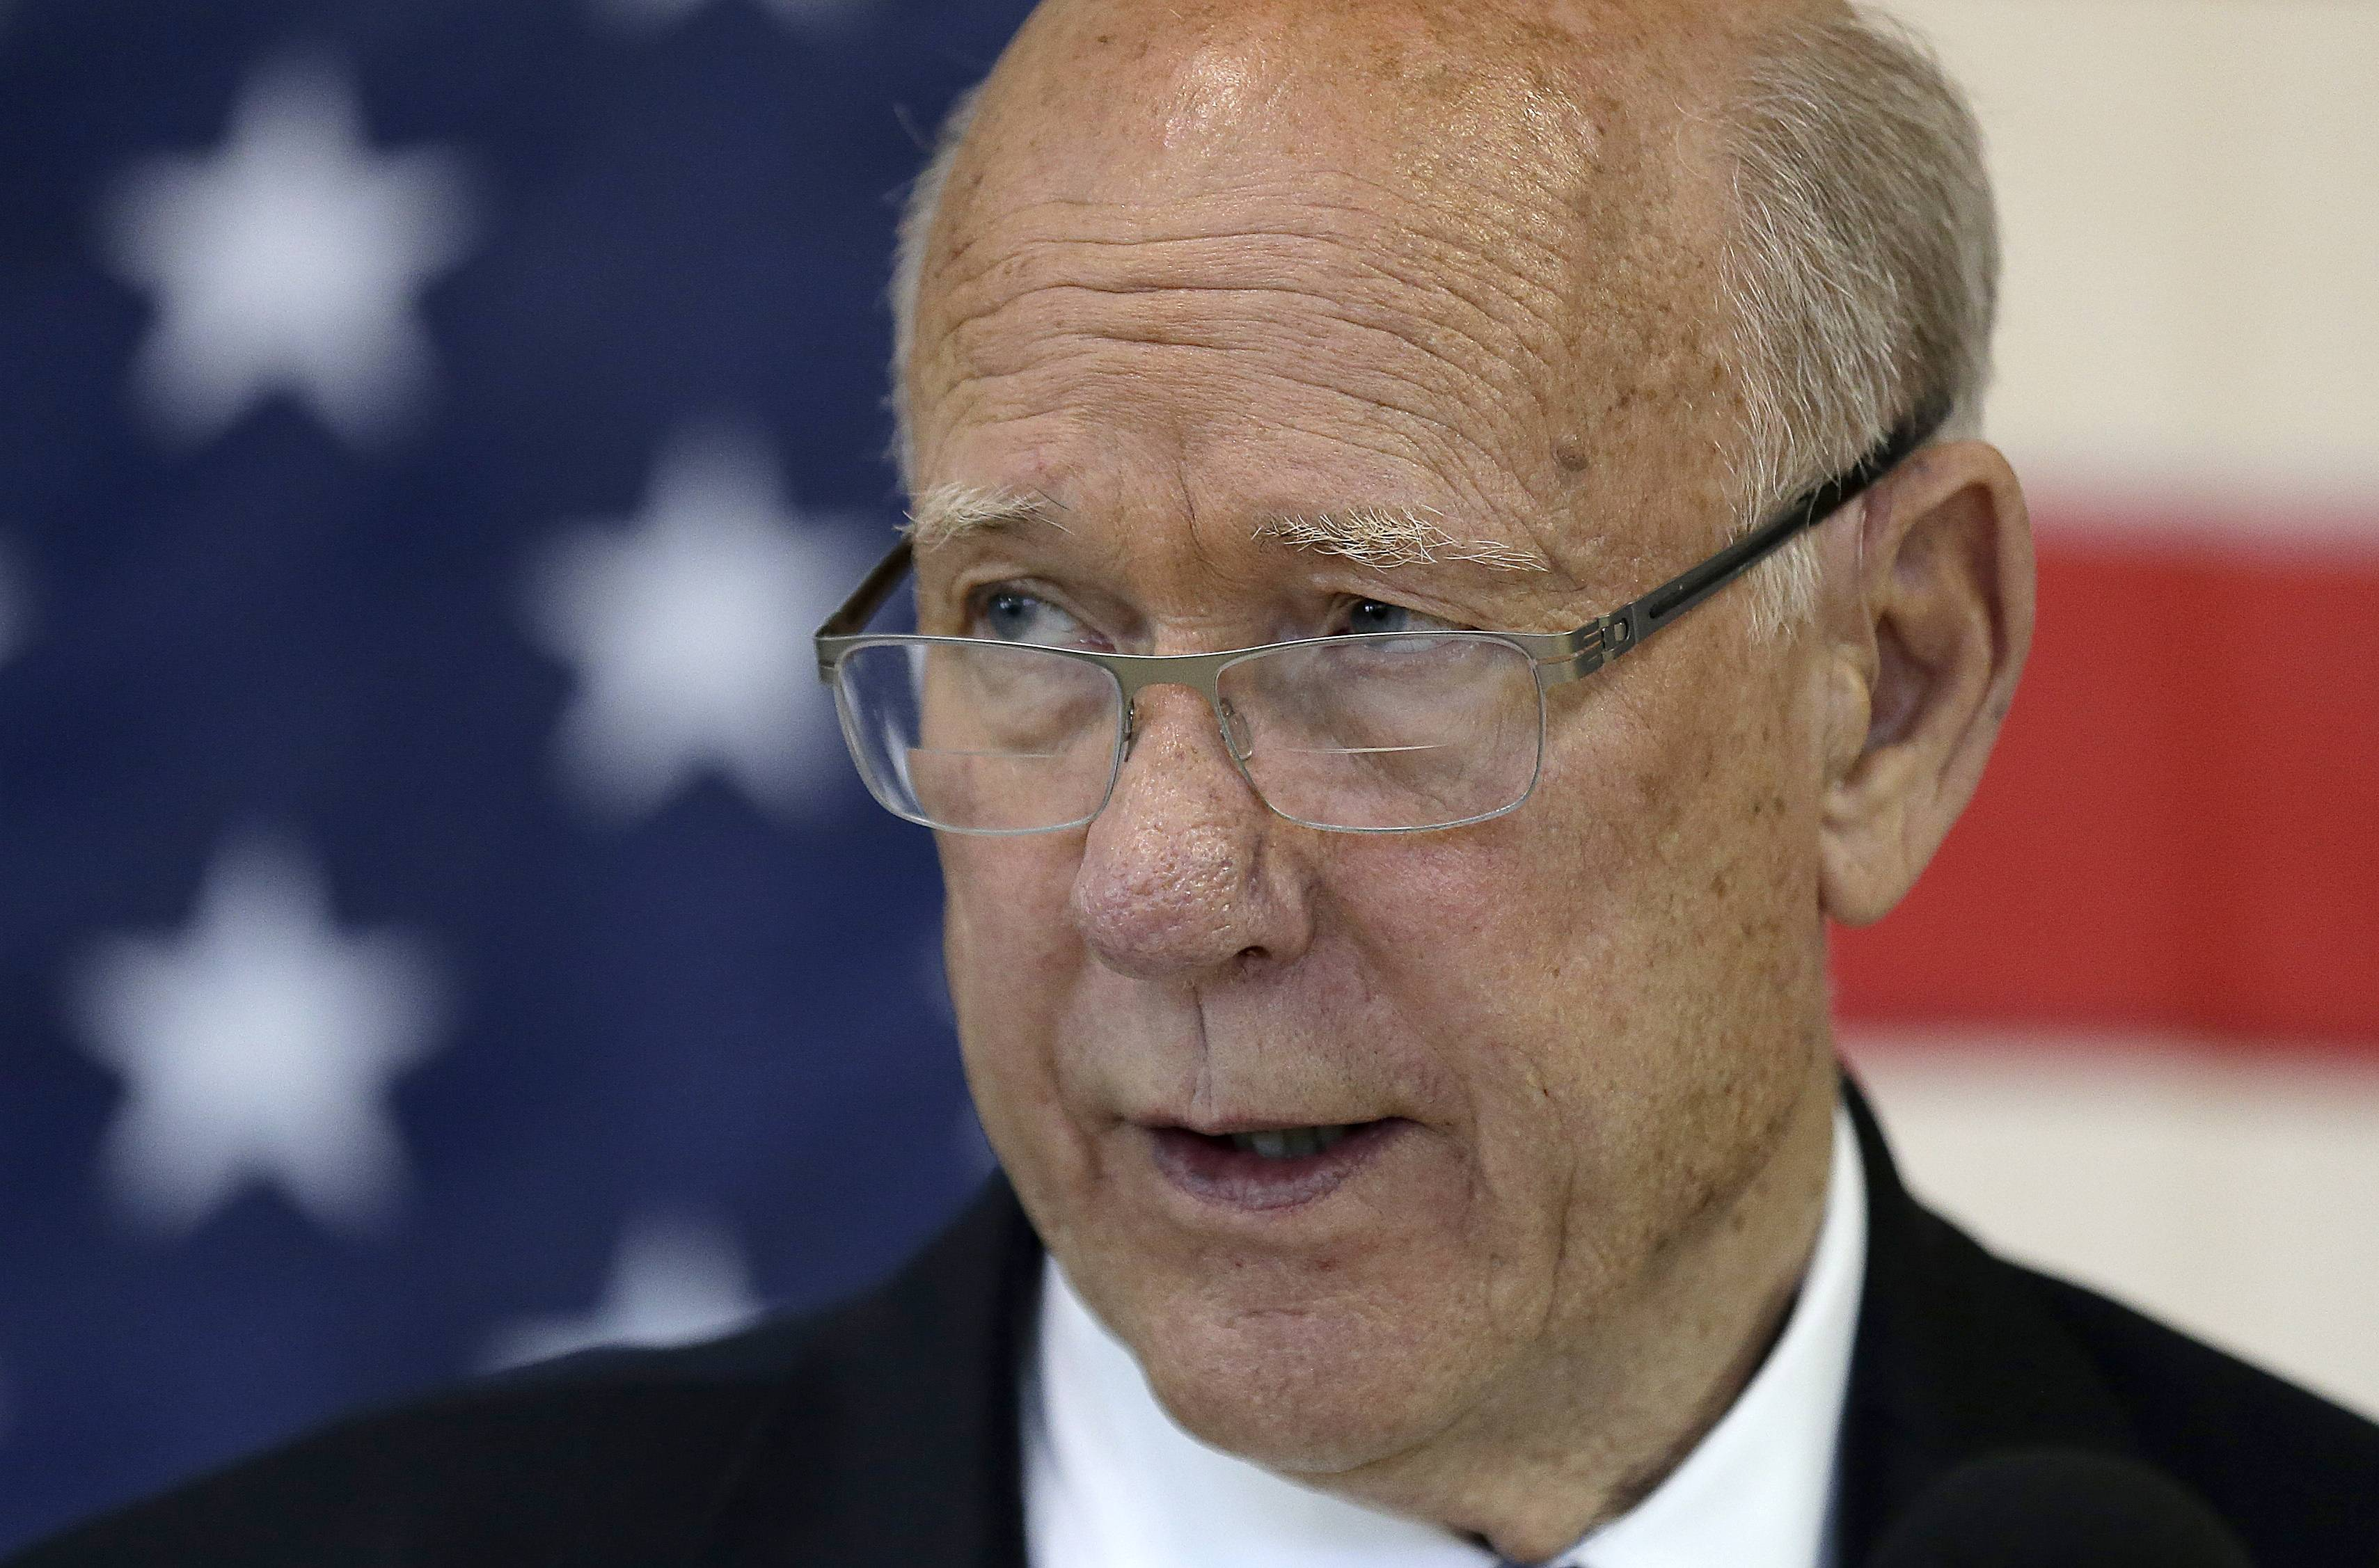 Senate and House incumbents in Kansas, Michigan and Missouri are trying to beat back challengers on Aug. 5 in the kickoff to a busy month of primaries. In Kansas, GOP Sen. Pat Roberts faces Milton Wolf, a radiologist and the second cousin of President Barack Obama.